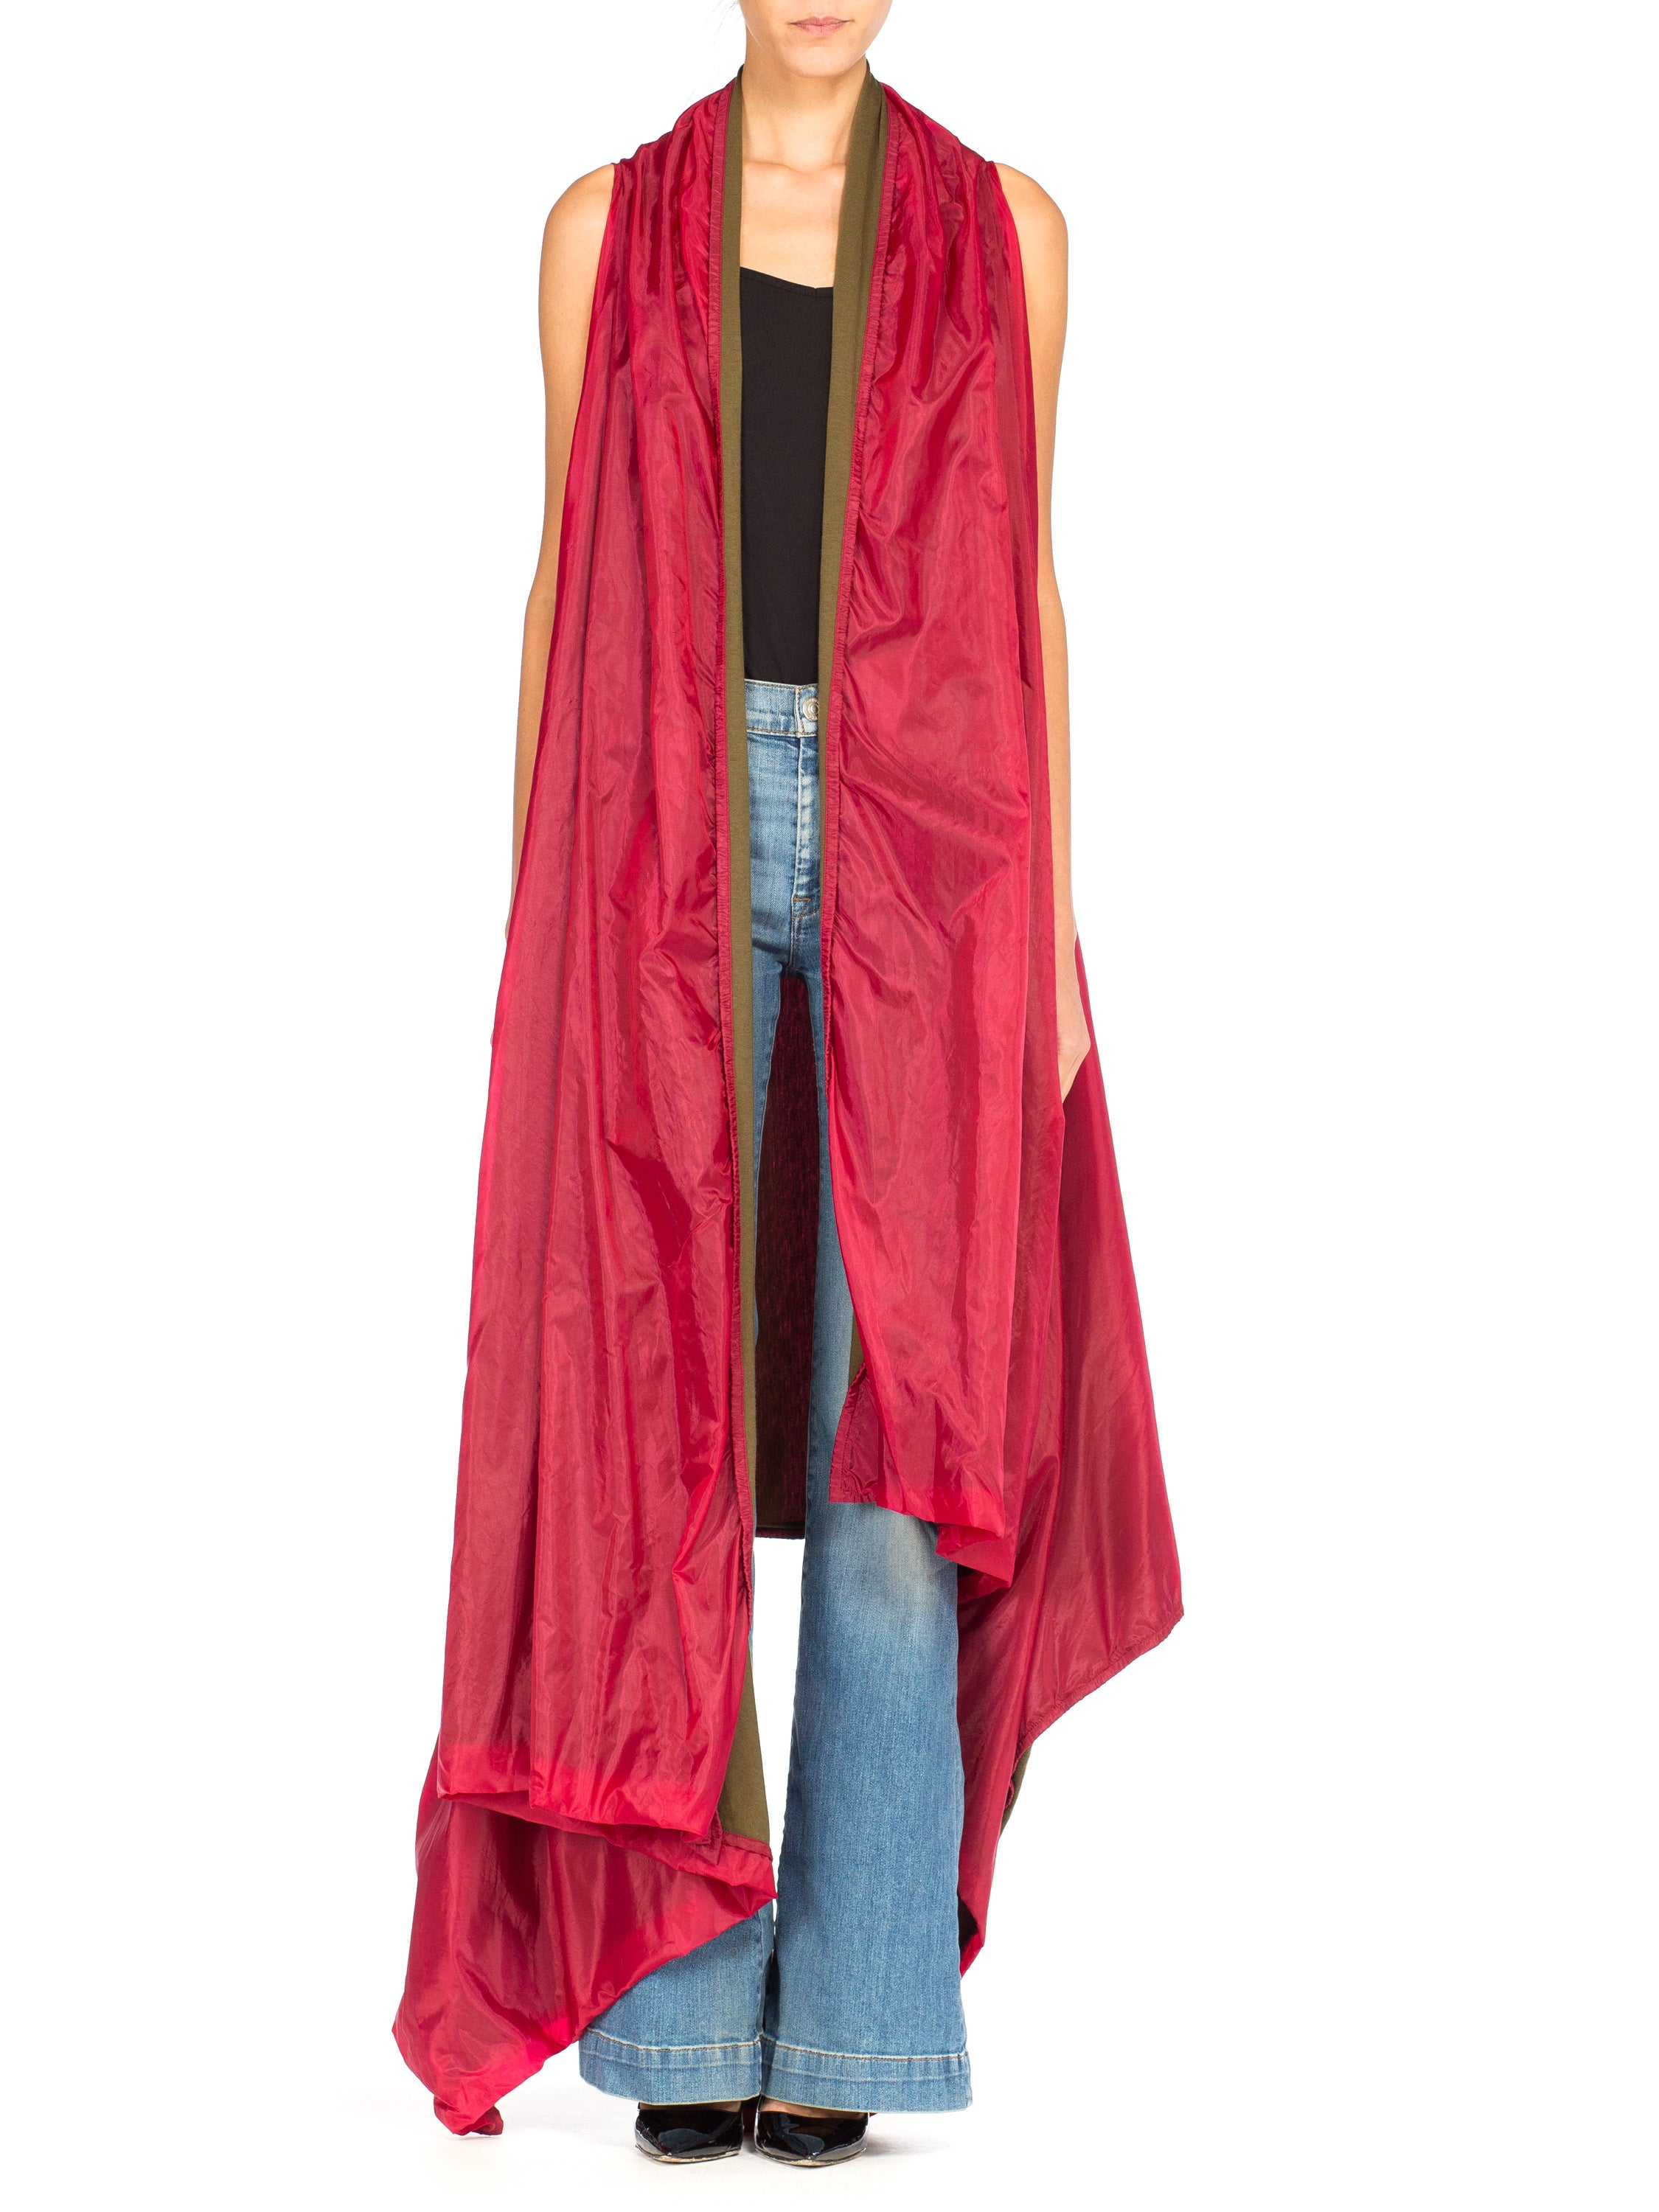 2000S ANN DEMEULEMEESTER Magenta Nylon Asymmetrical Waterfall Vest With Jersey Contrast Lining